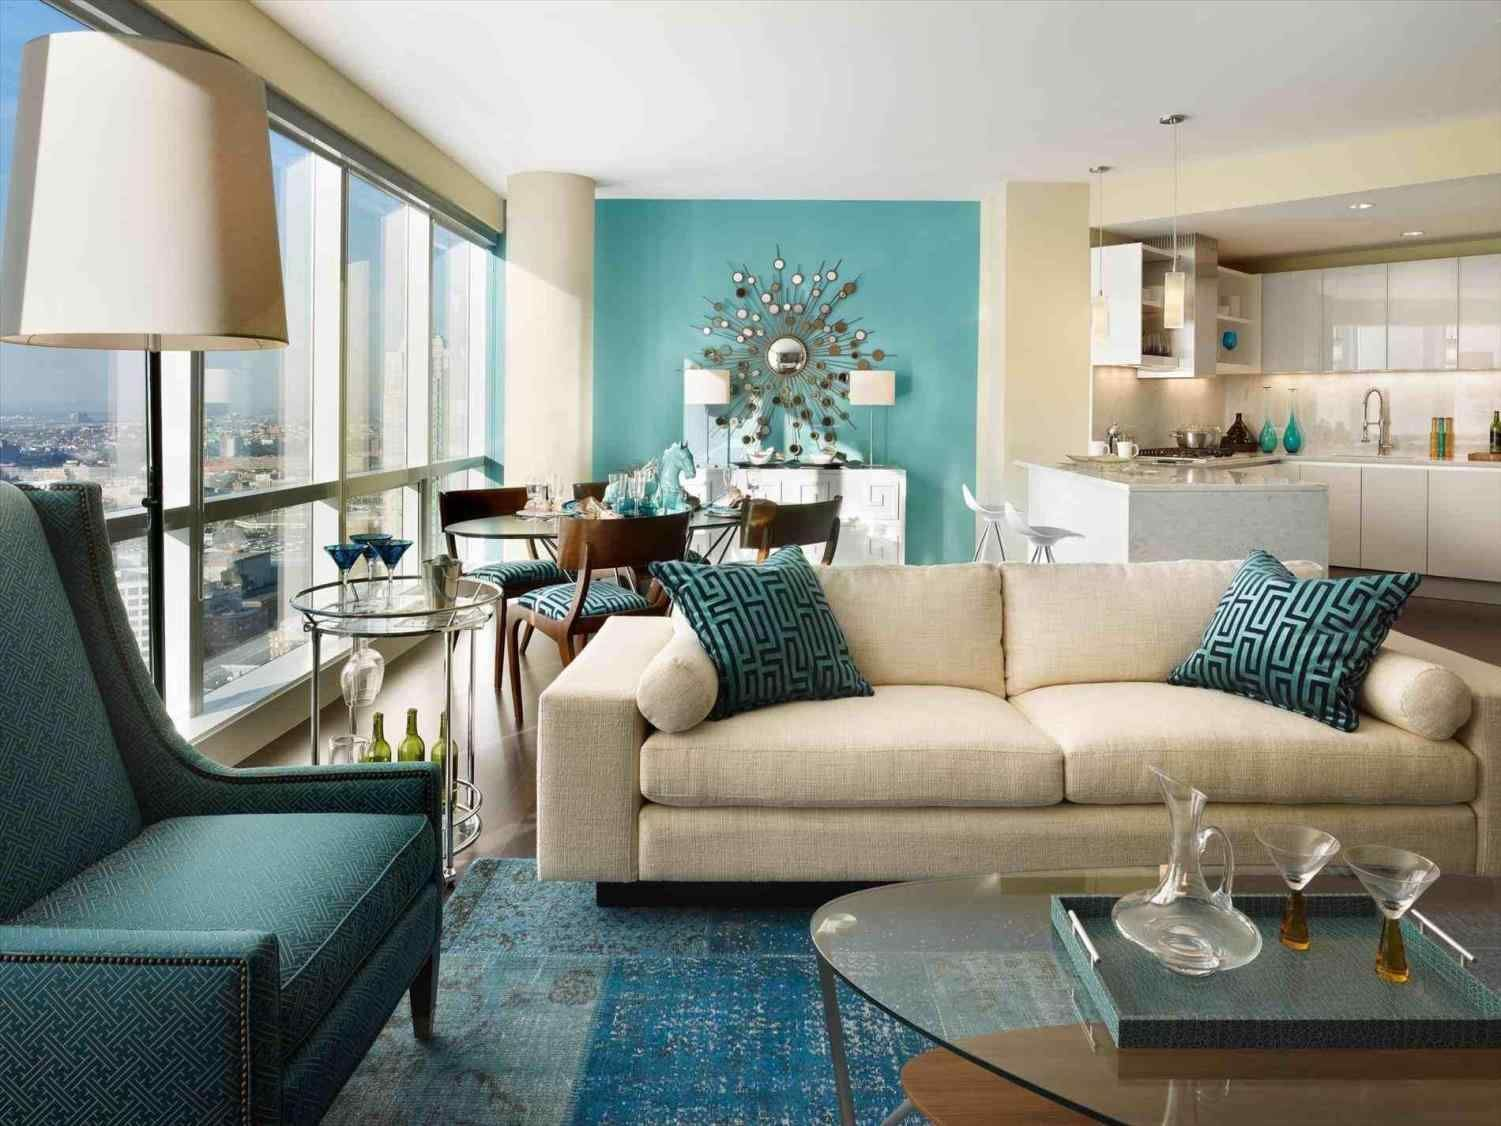 14 Incredible Navy Blue And Cream Living Room Ideas Bre